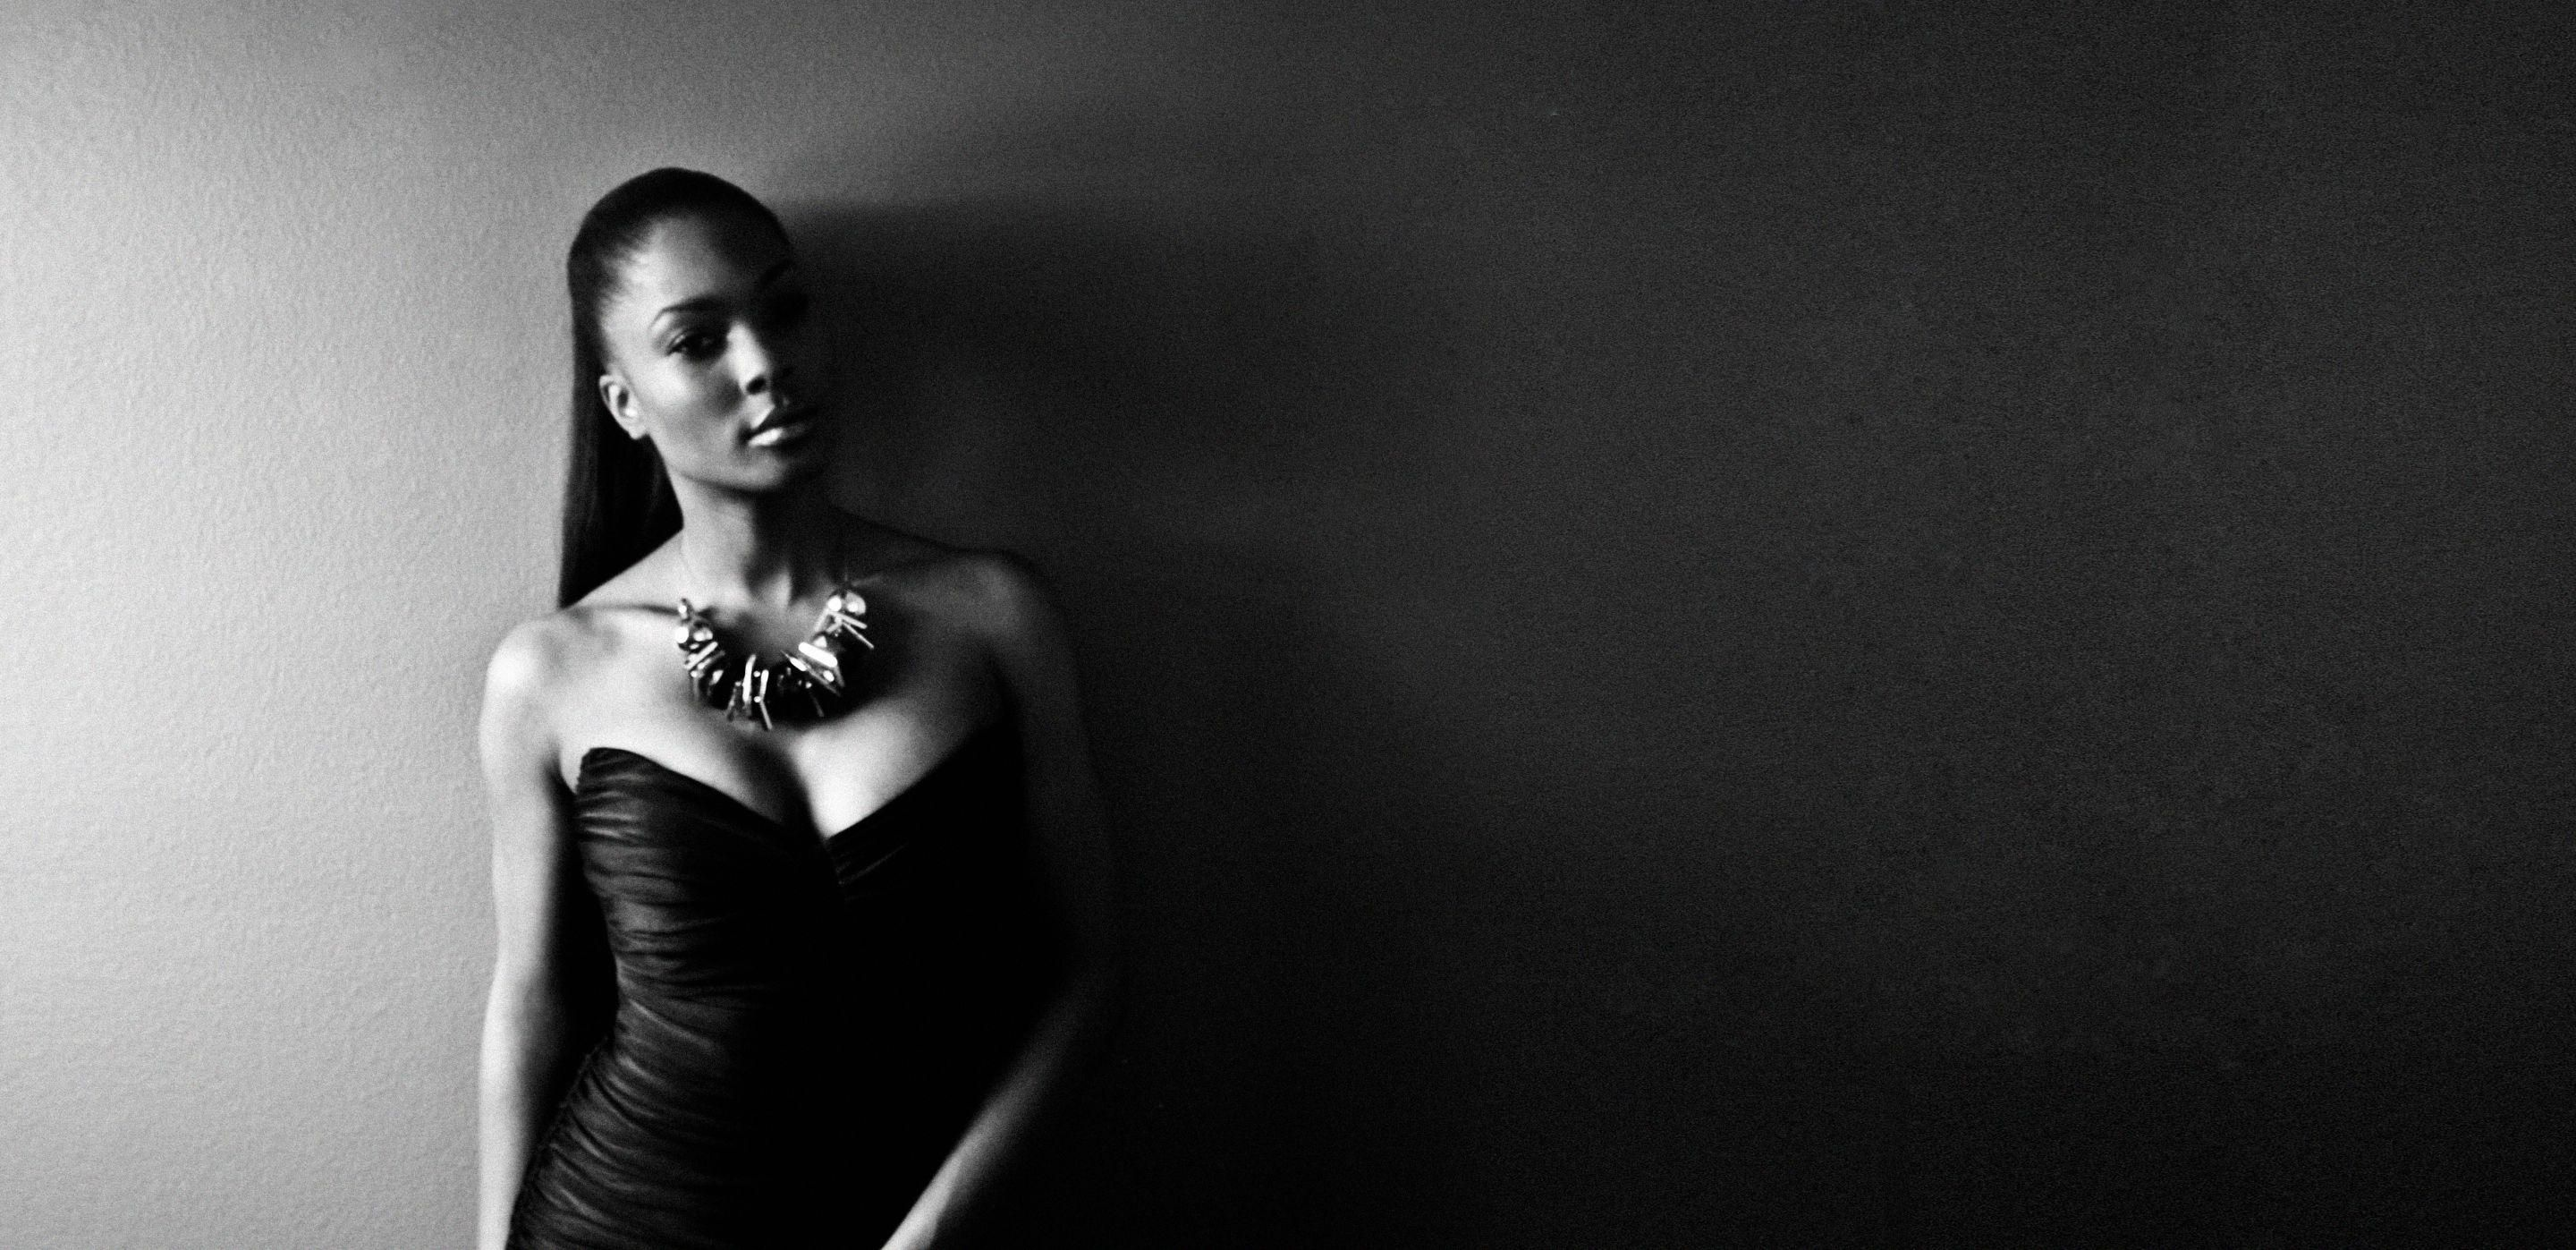 Black and White Self Portrait by Lanisha Cole